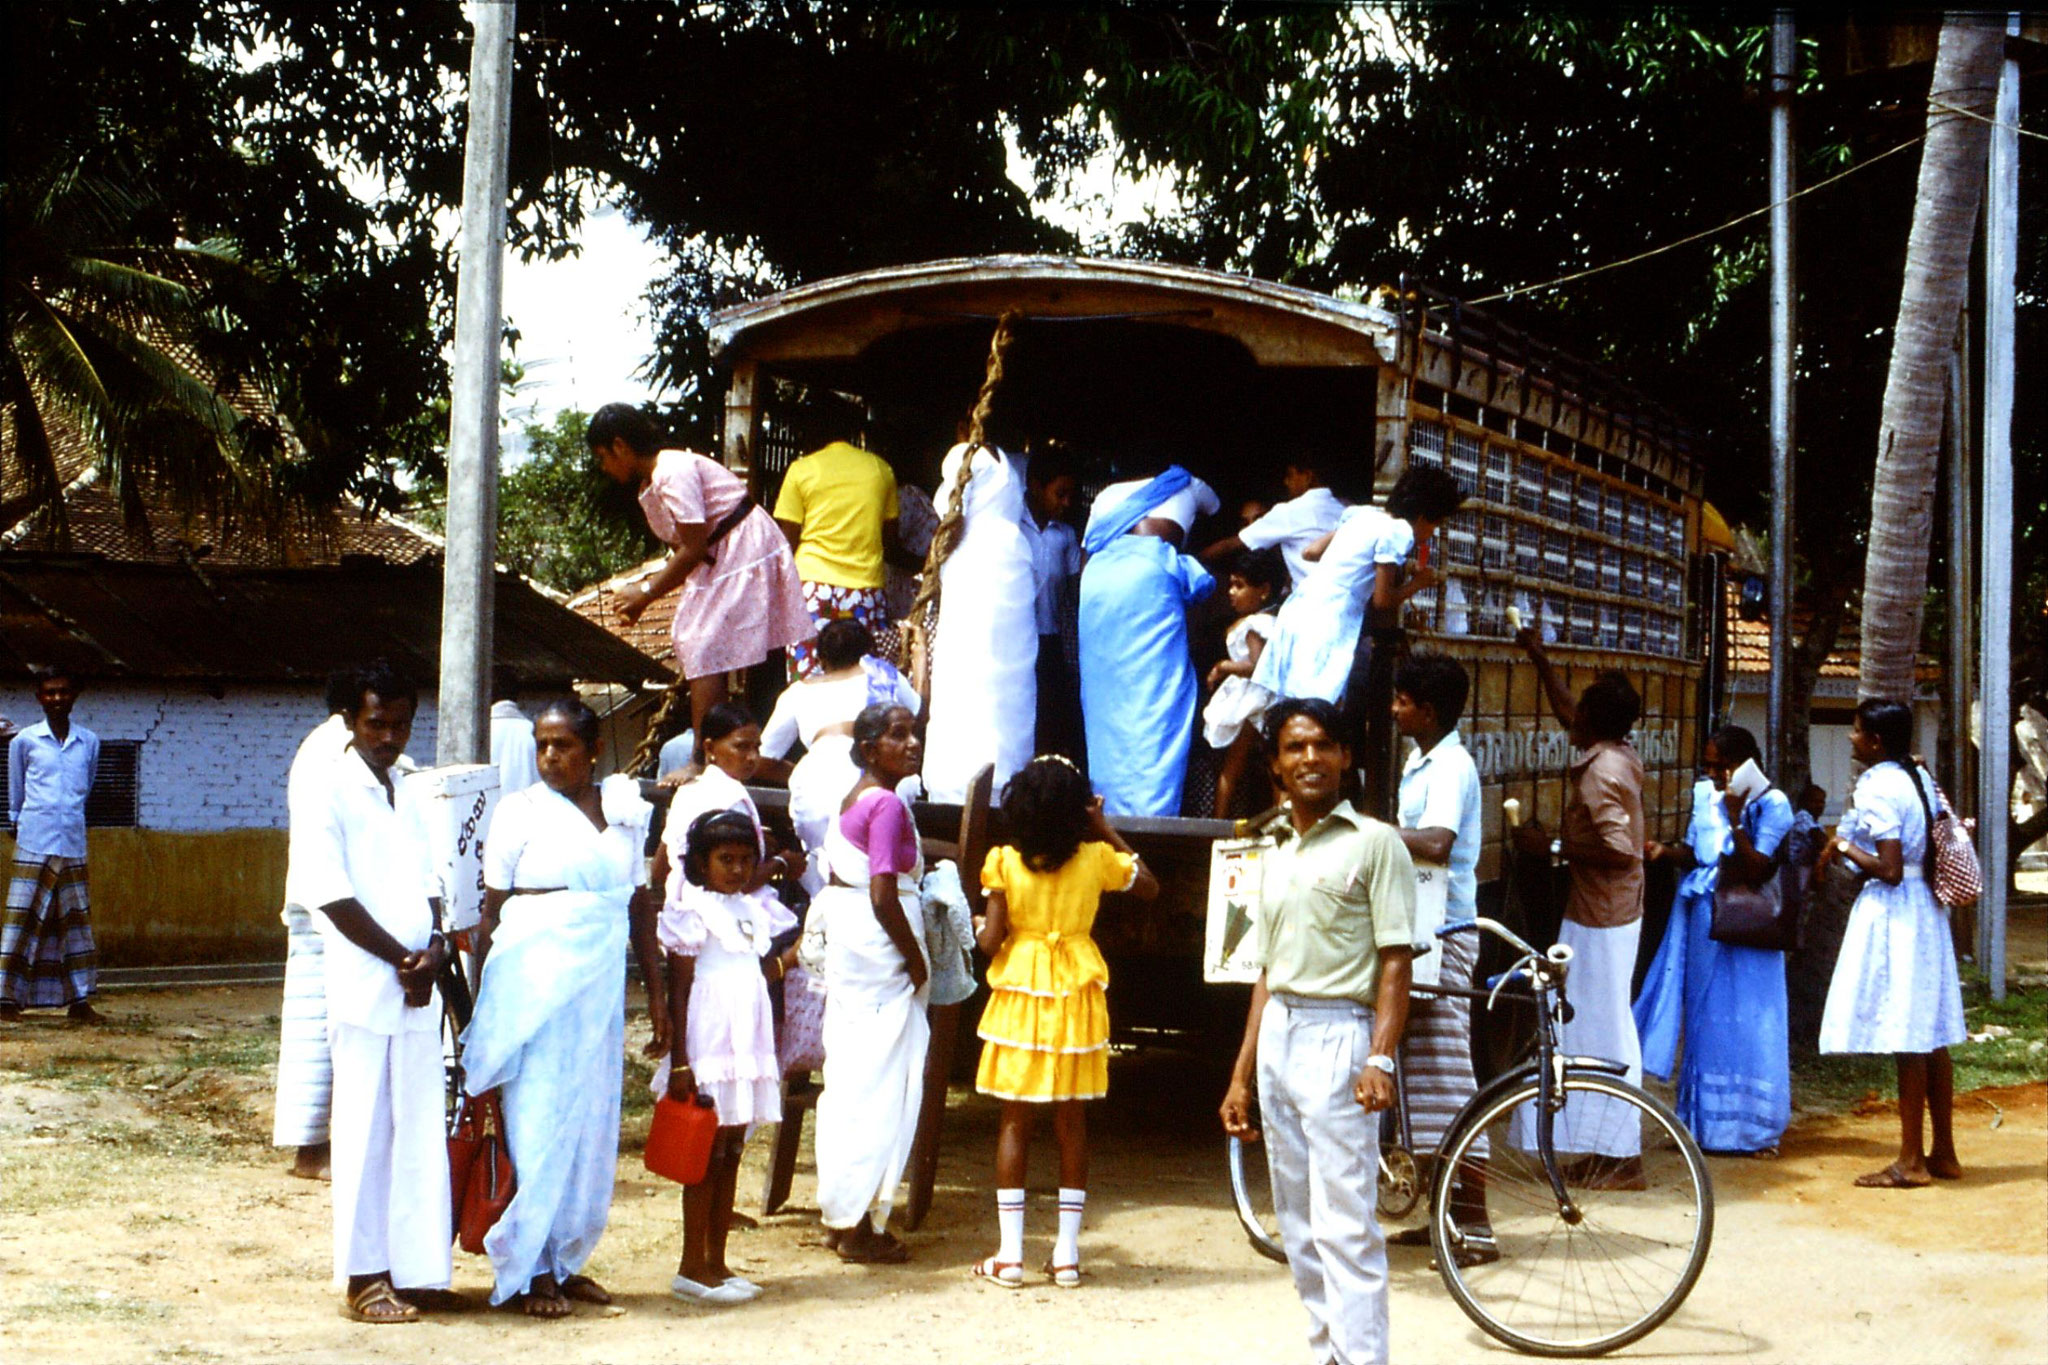 9/2/1990: 11: Anuradhapura, pilgrims getting on converted lorry at Isurumoniya